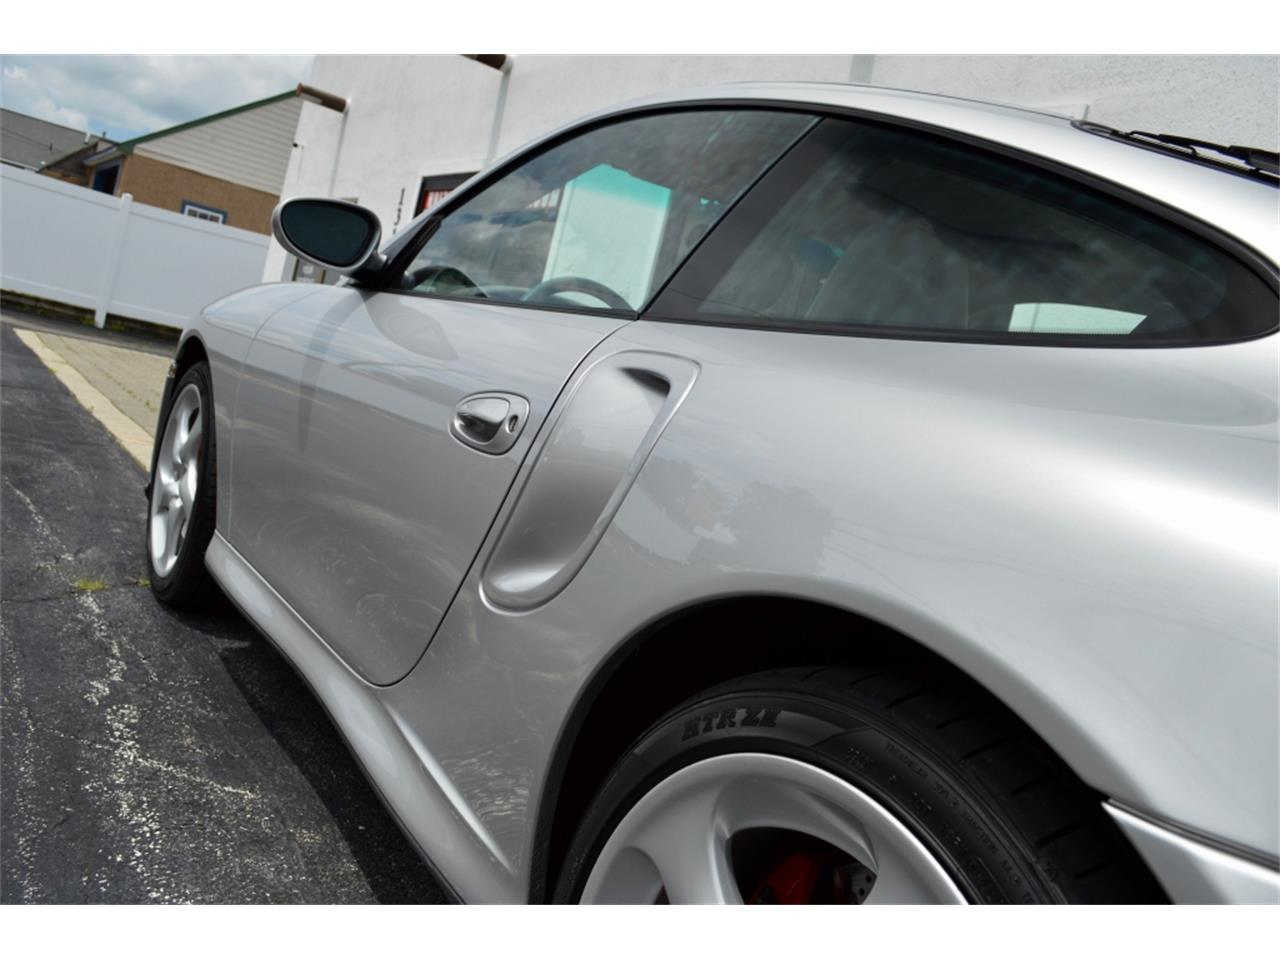 2003 Porsche 911 Turbo (CC-1351916) for sale in West Chester, Pennsylvania